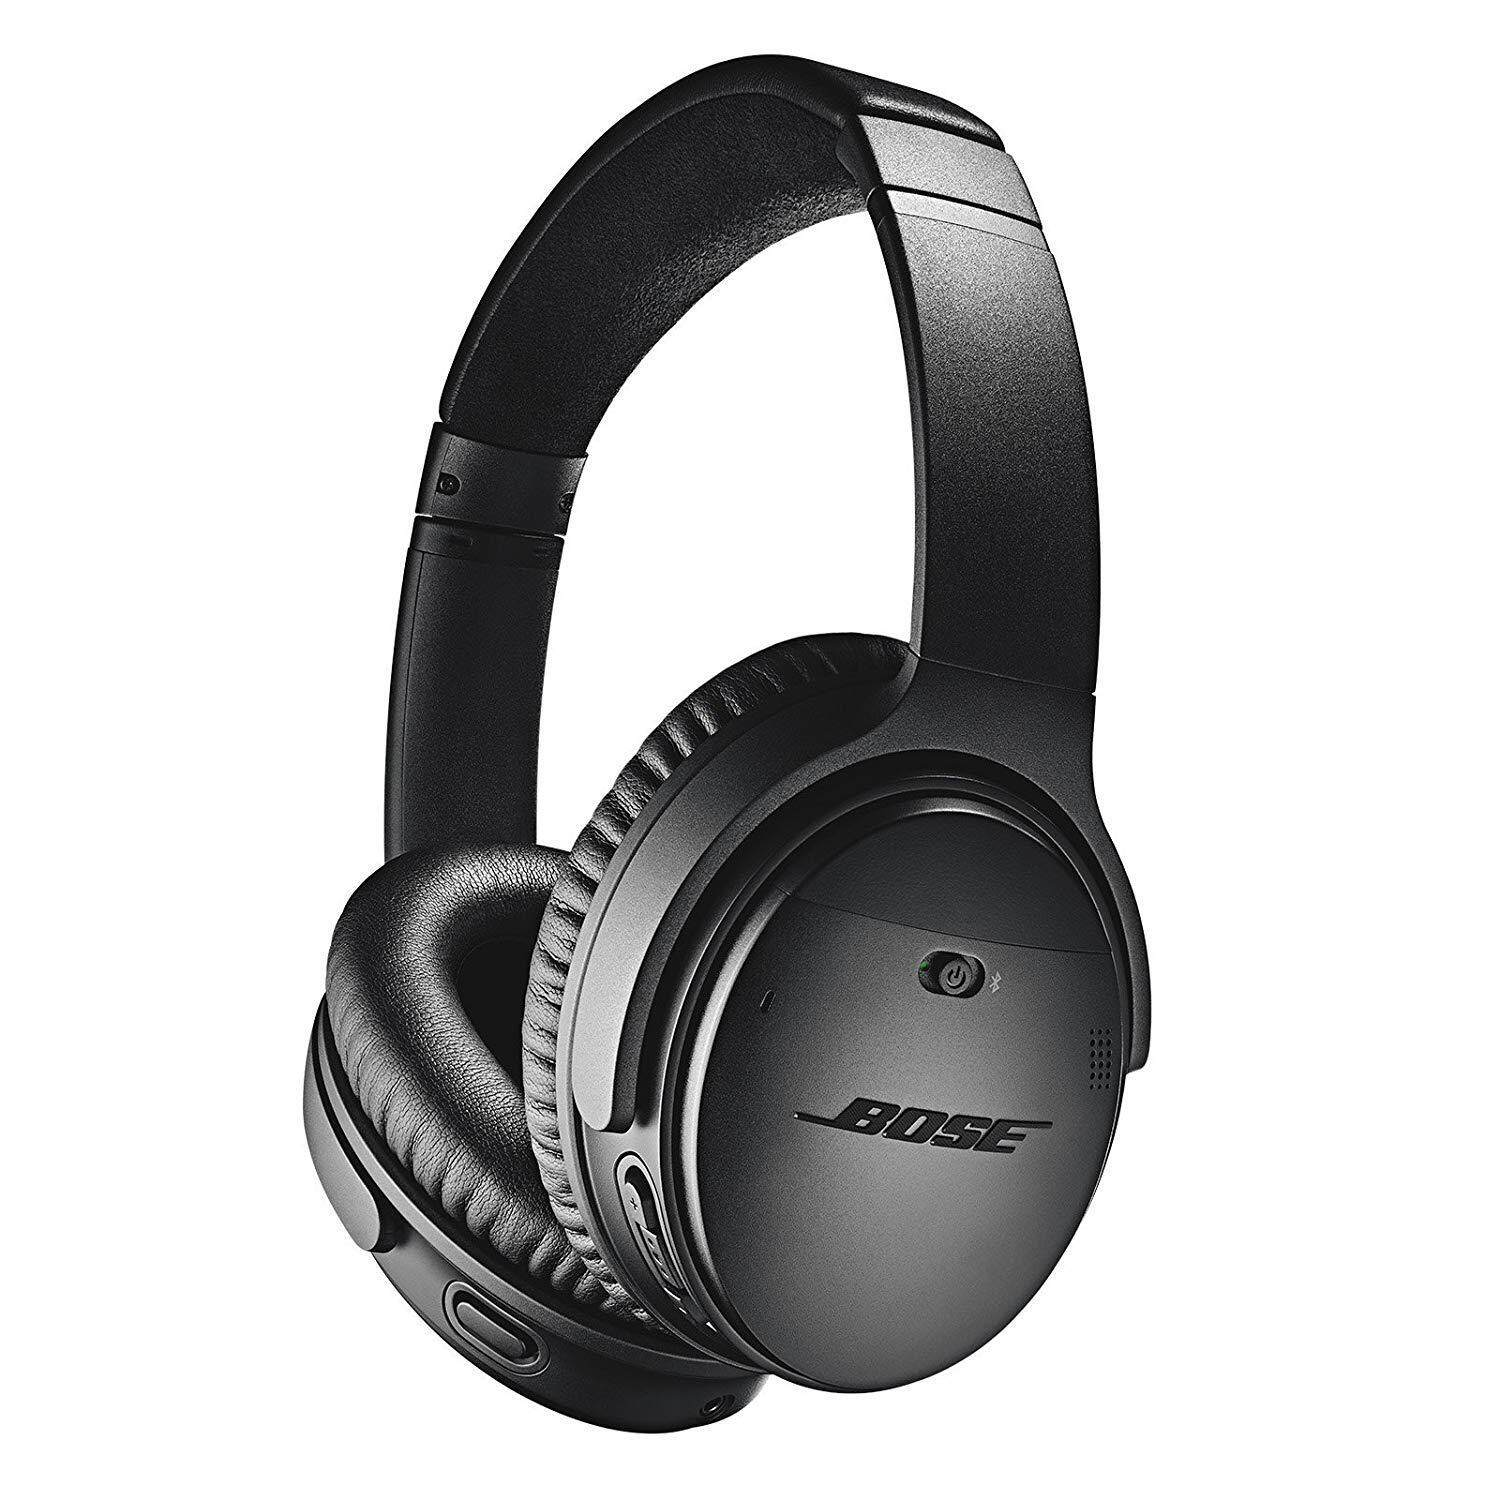 การใช้งาน  เพชรบุรี Bose QuietComfort 35 Wireless Noise Cancelling Headphones (Black)